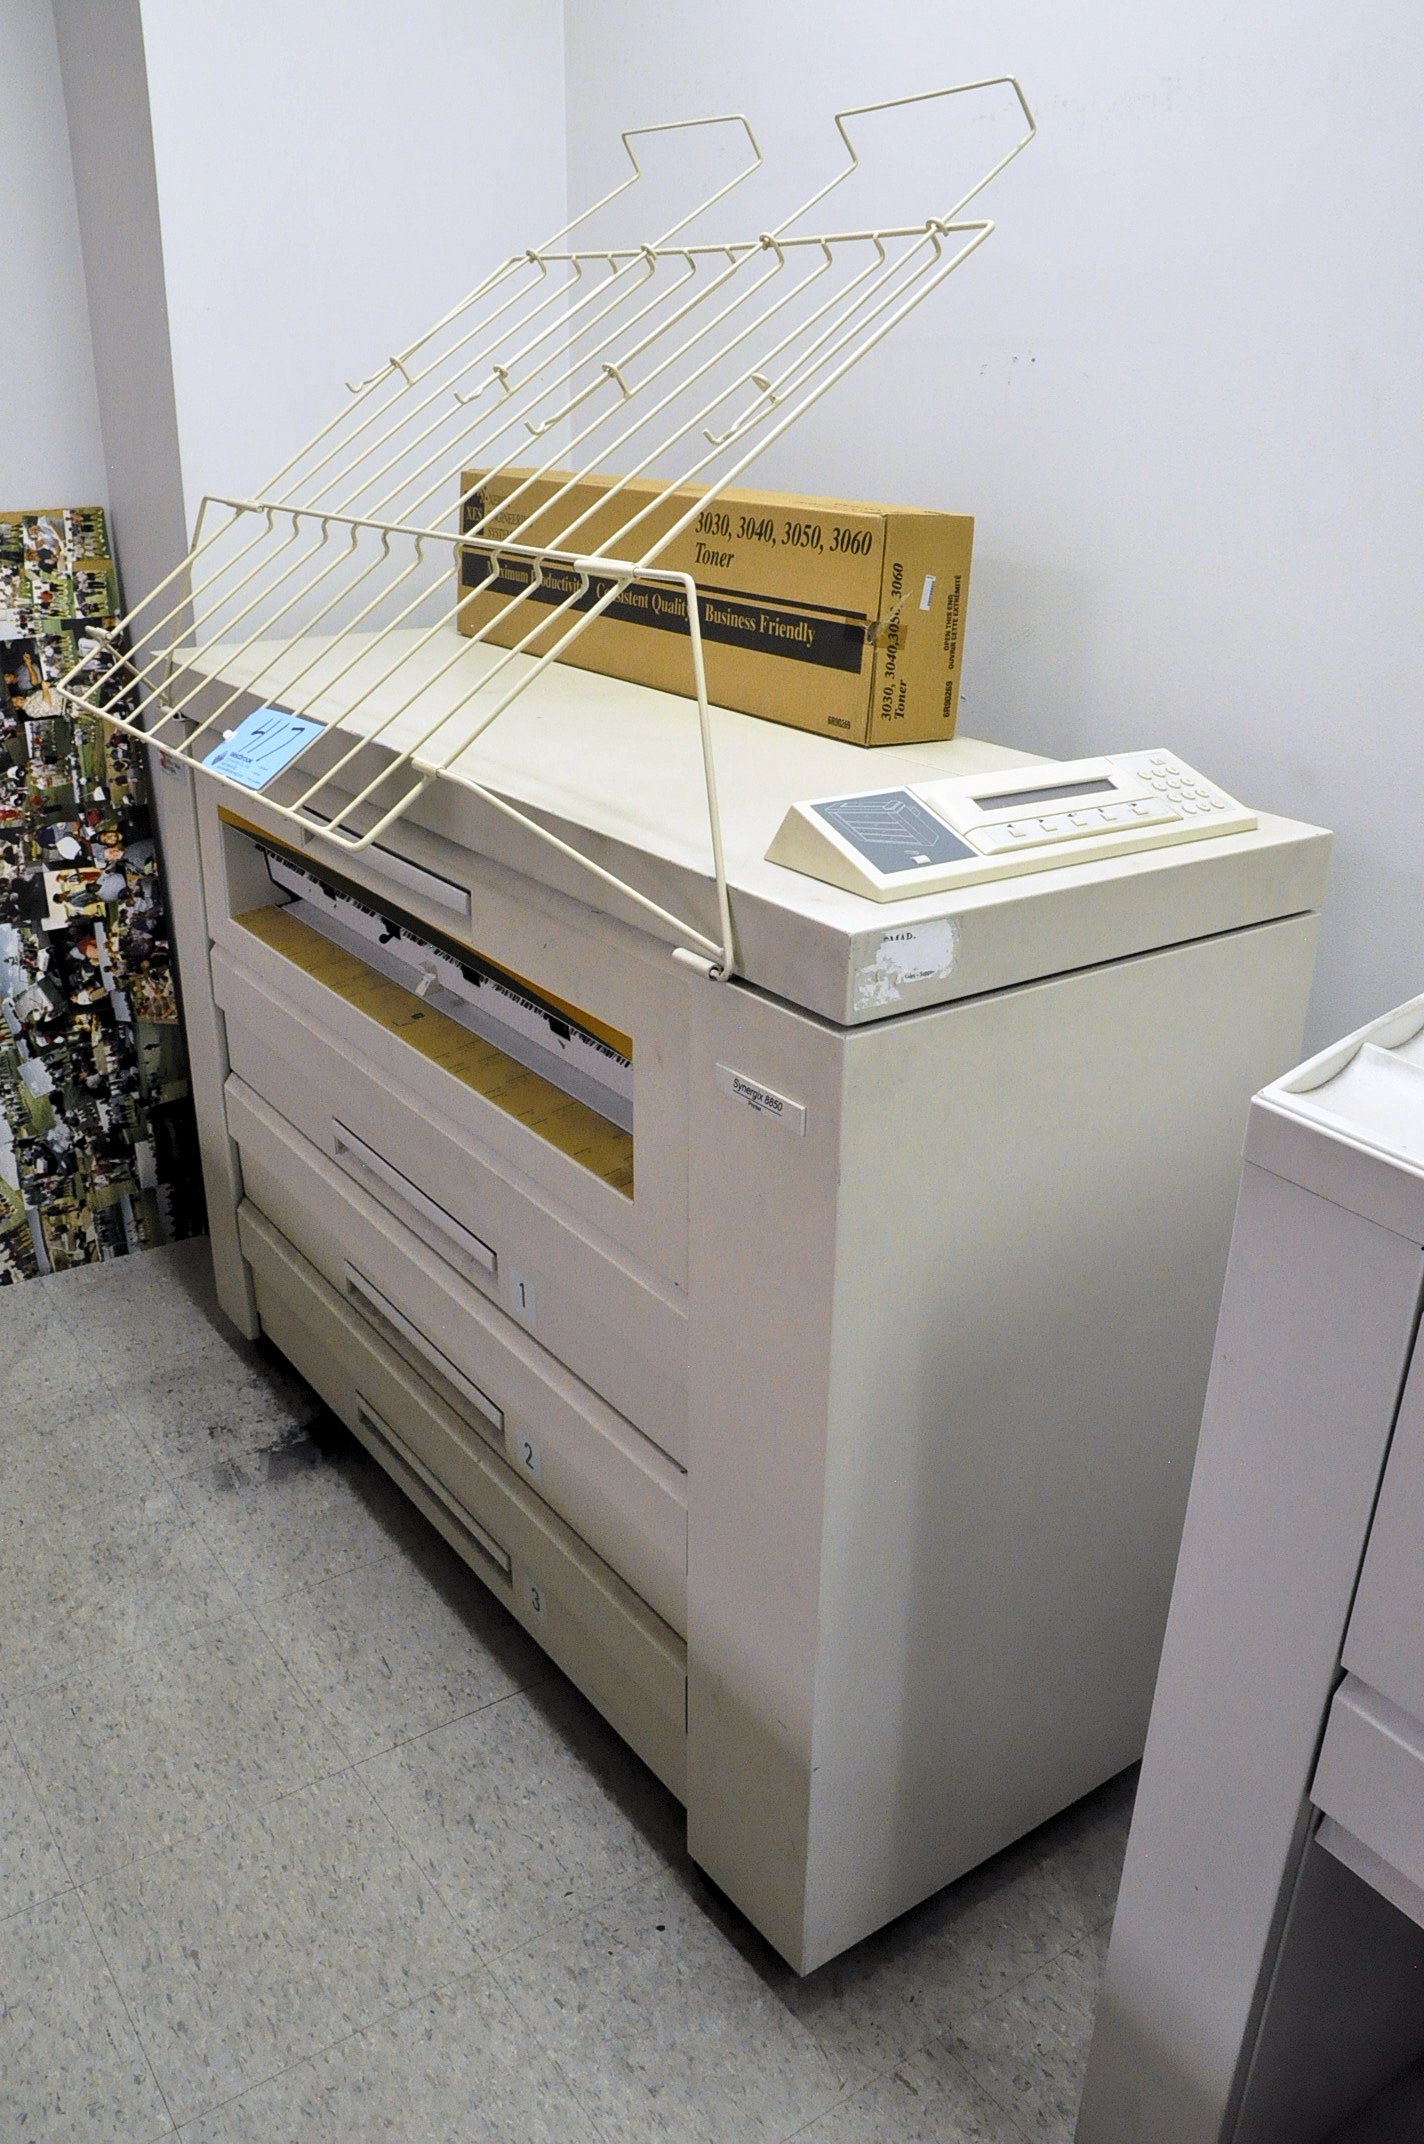 Xerox Synergix 8850, Blue Print Copier, S/n N/a, (Office #118) - Image 2 of 2